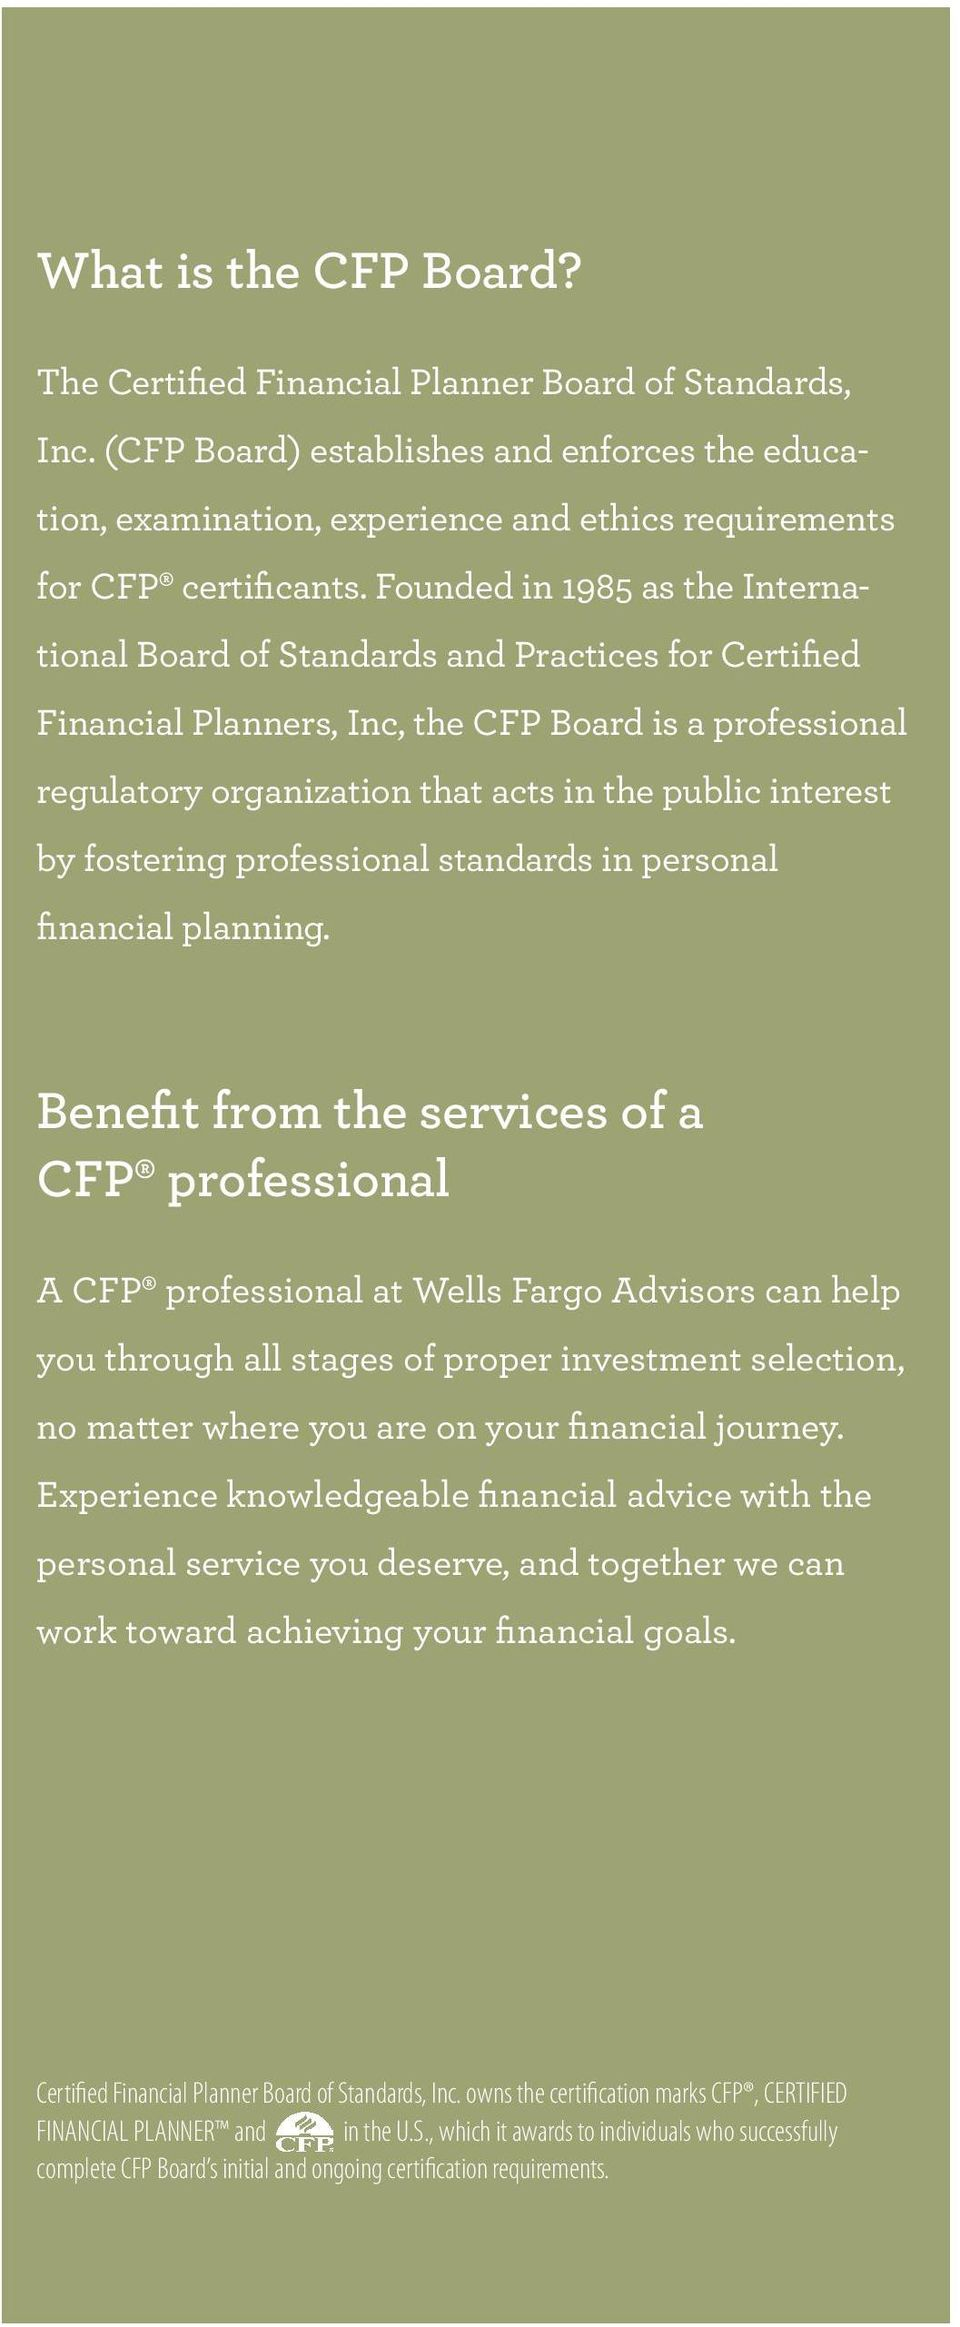 Founded in 1985 as the International Board of Standards and Practices for Certified Financial Planners, Inc, the CFP Board is a professional regulatory organization that acts in the public interest